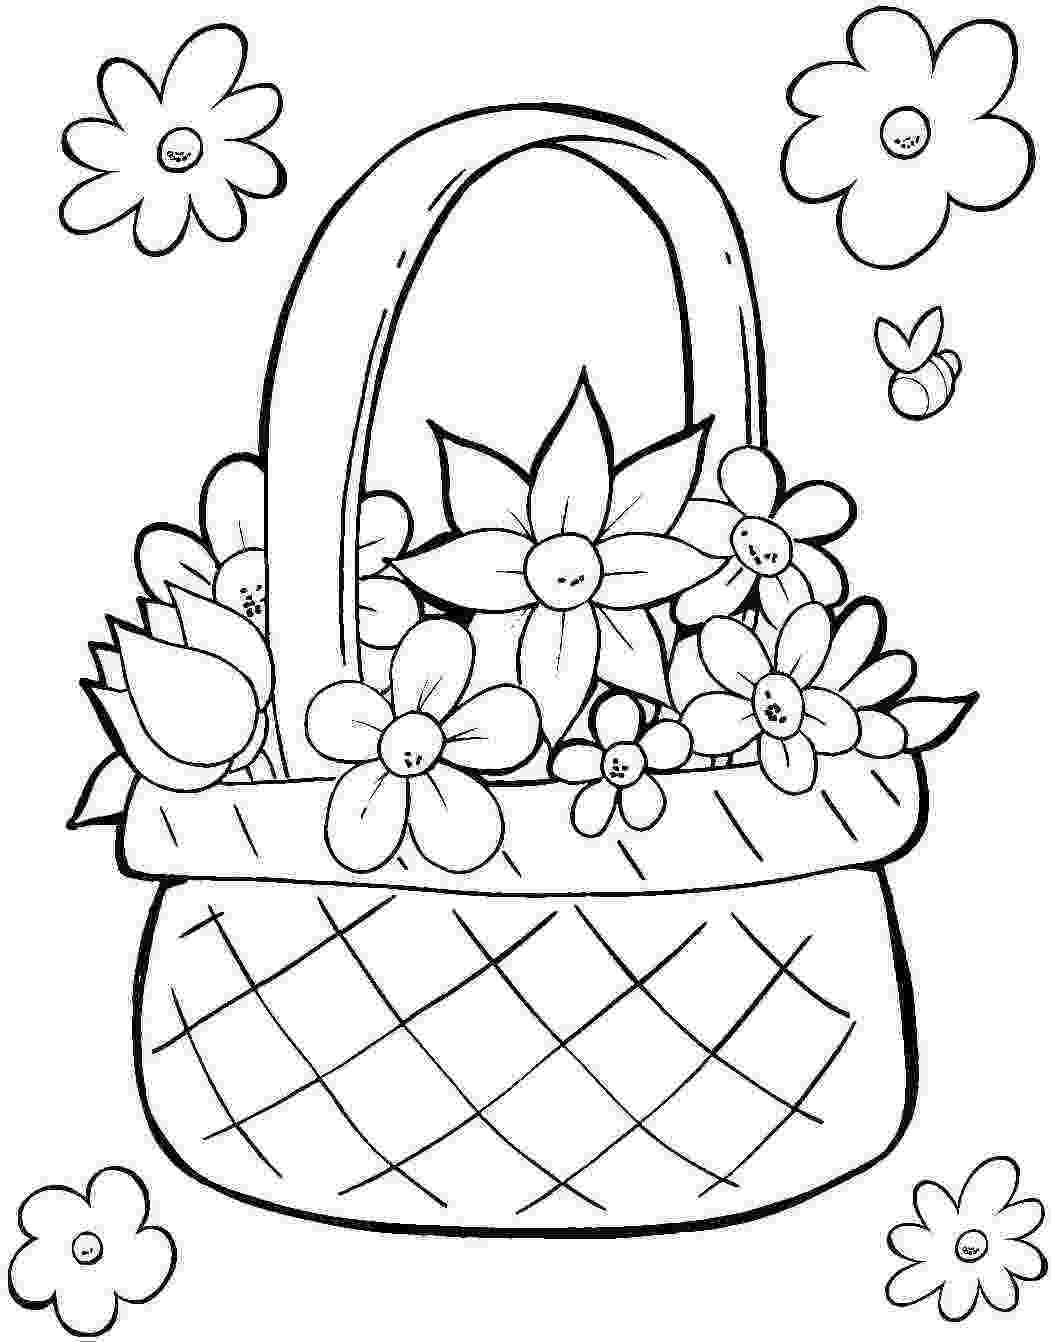 coloring pages easter flowers easter coloring pages easter lily coloring pages flowers coloring pages easter